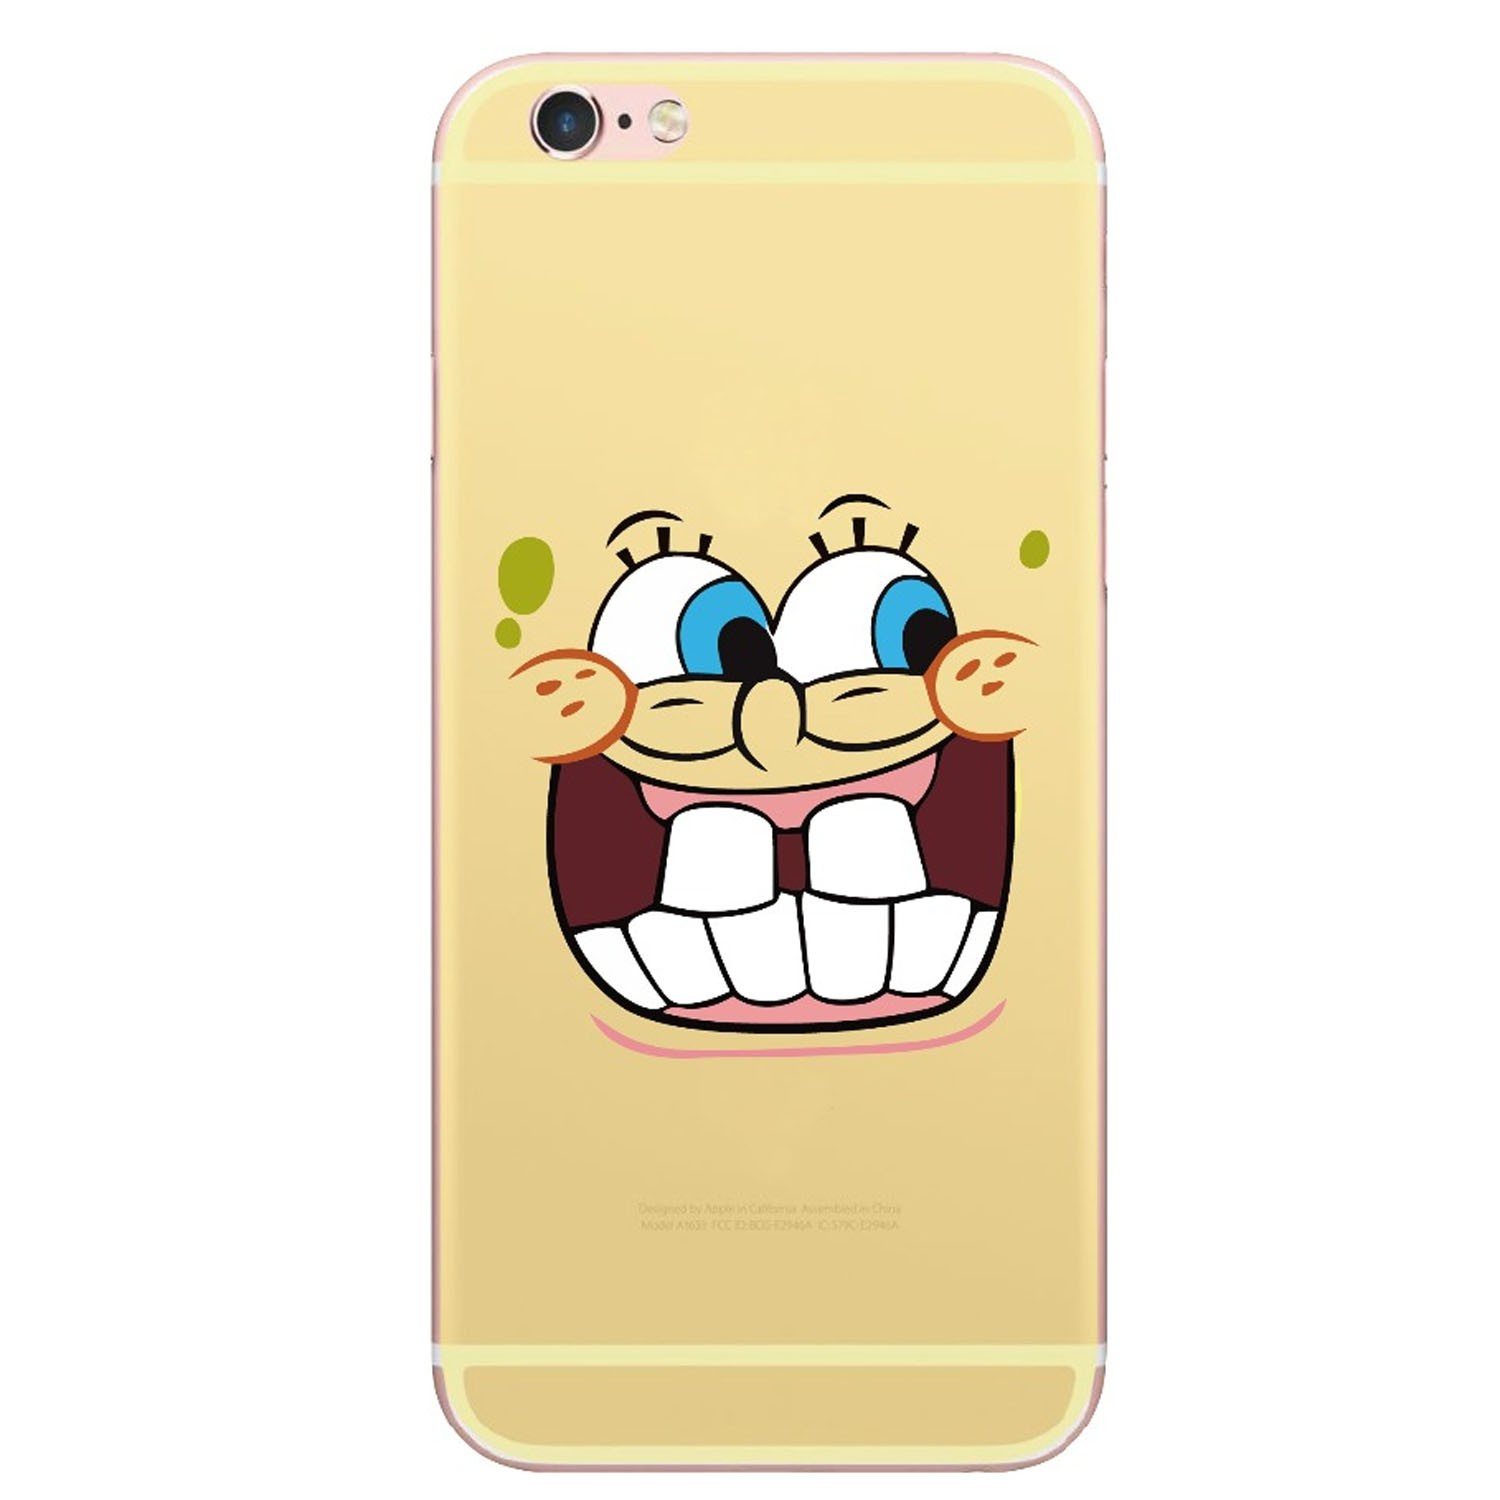 Kritzel Case Collection iPhone 6 plus / 6s plus - #71